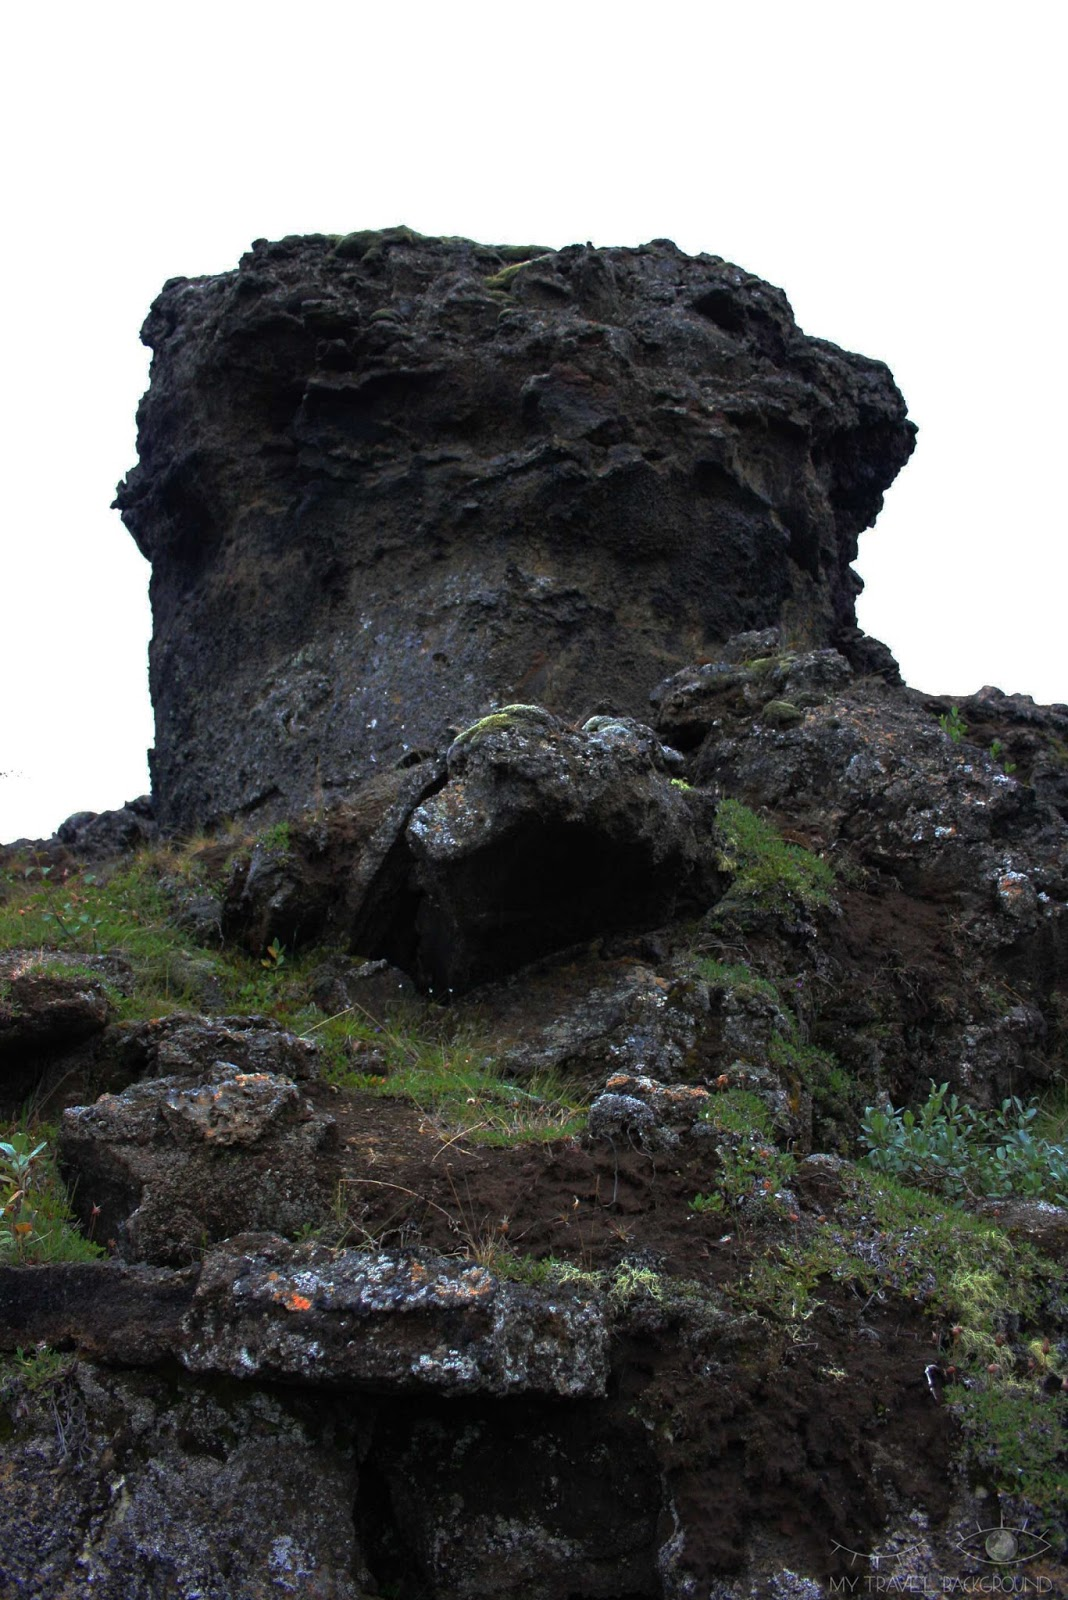 My Travel Background : 2 jours autour du lac Myvatn en Islande - Formations de lave de Dimmuborgir